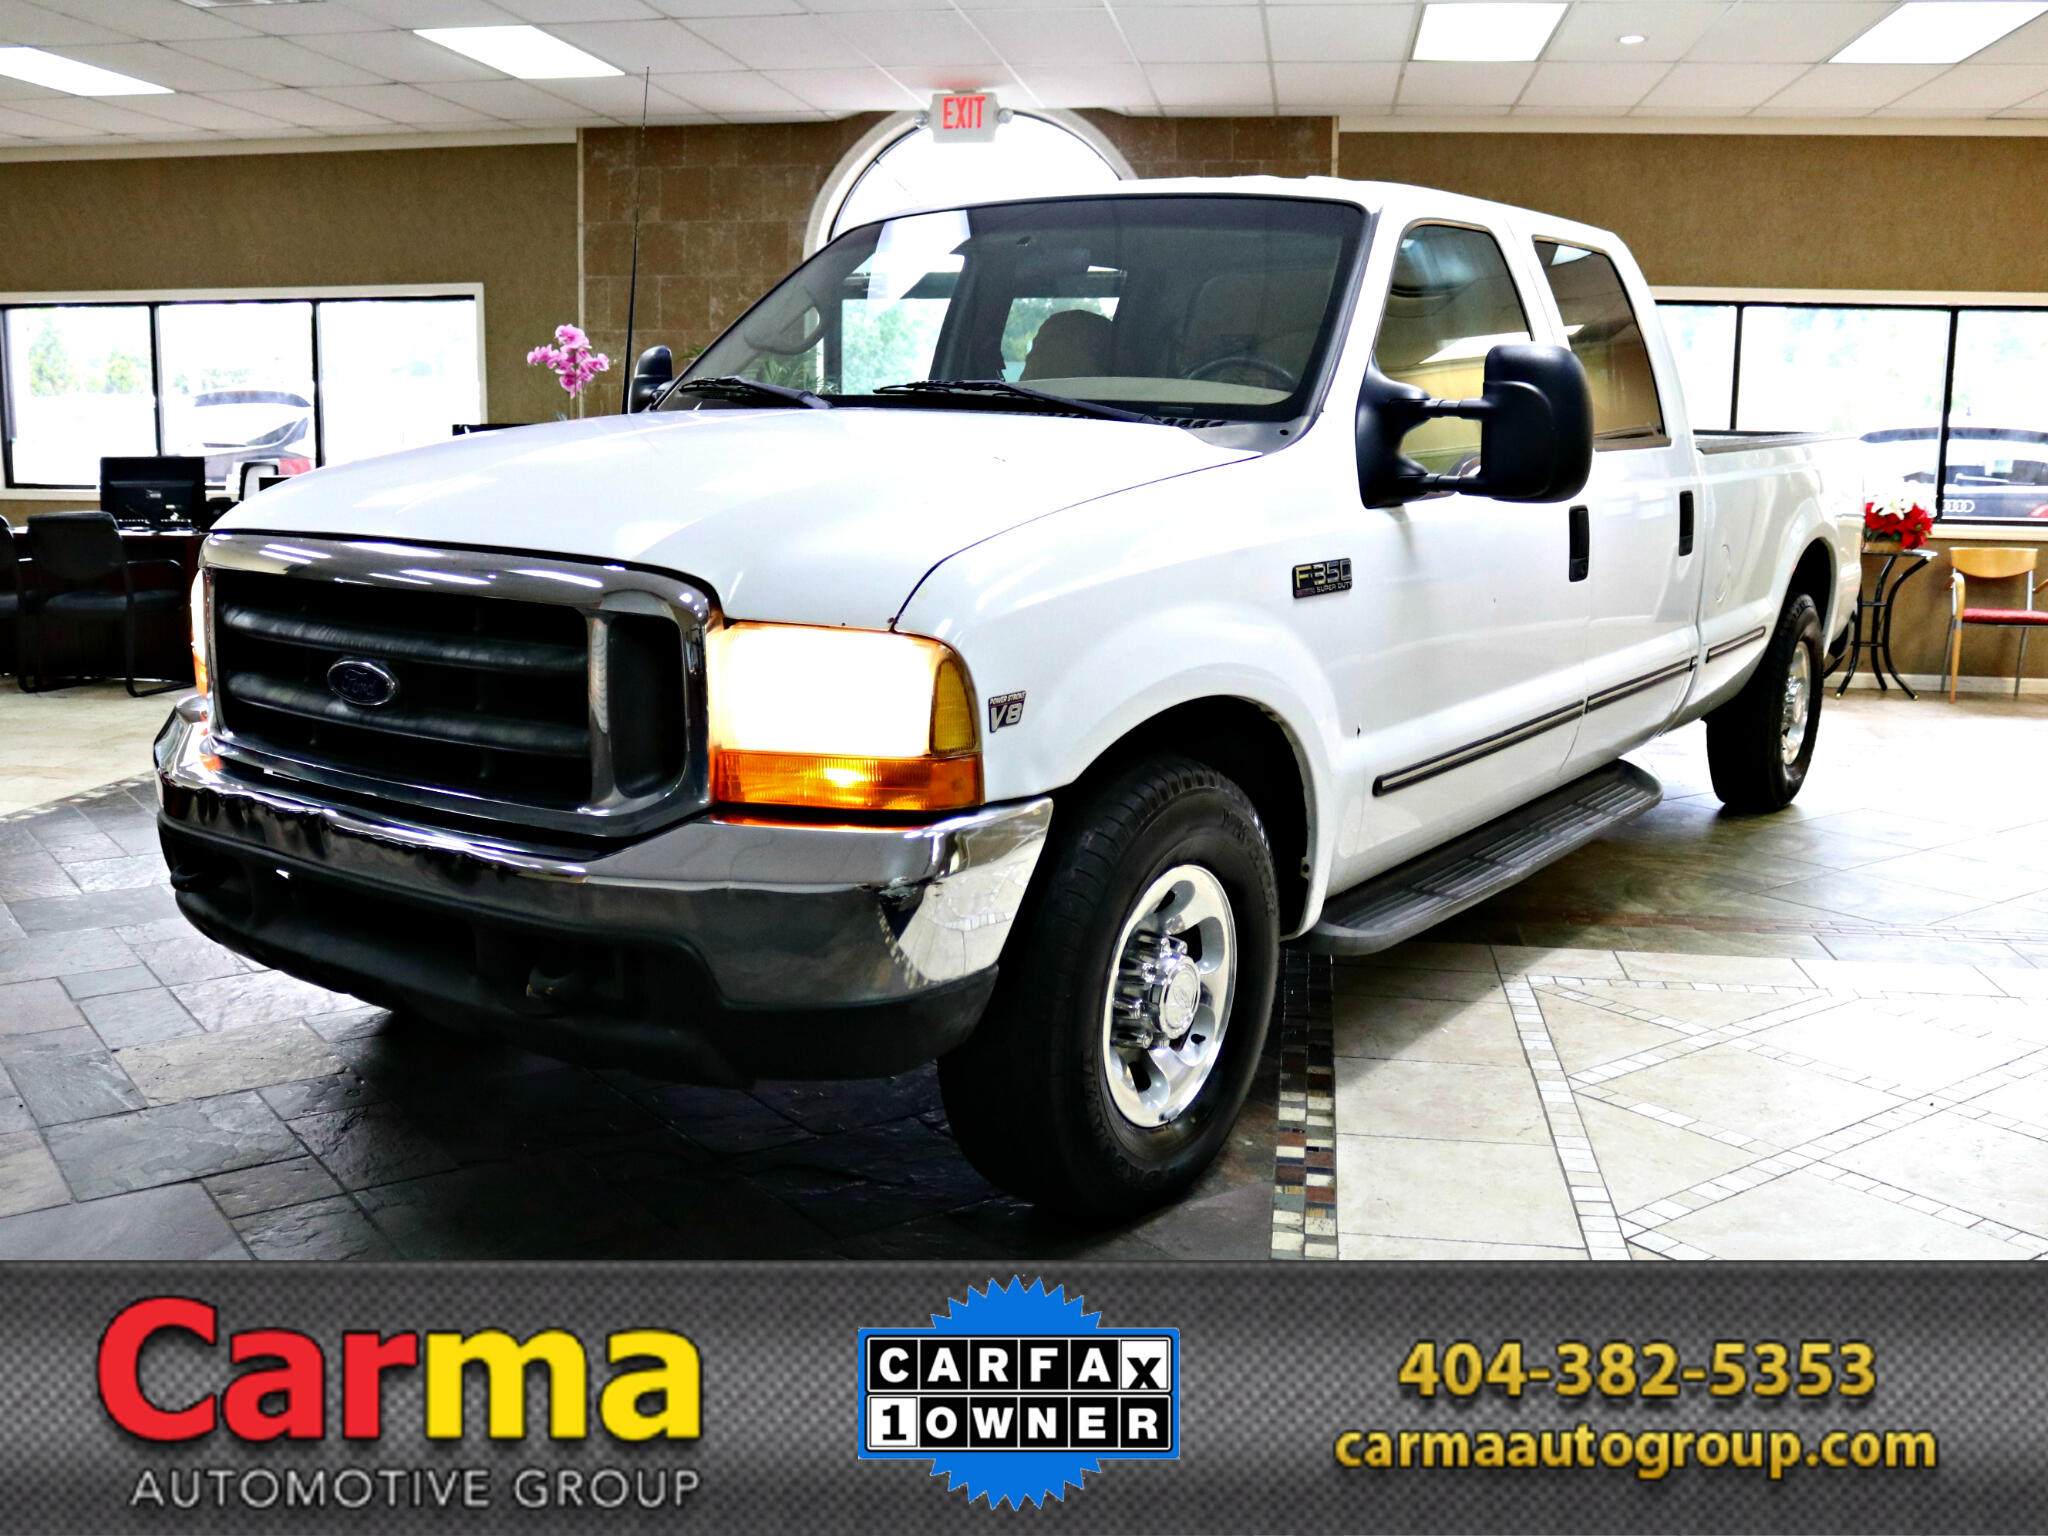 1999 Ford F-350 SD XLT Crew Cab Long Bed 2WD